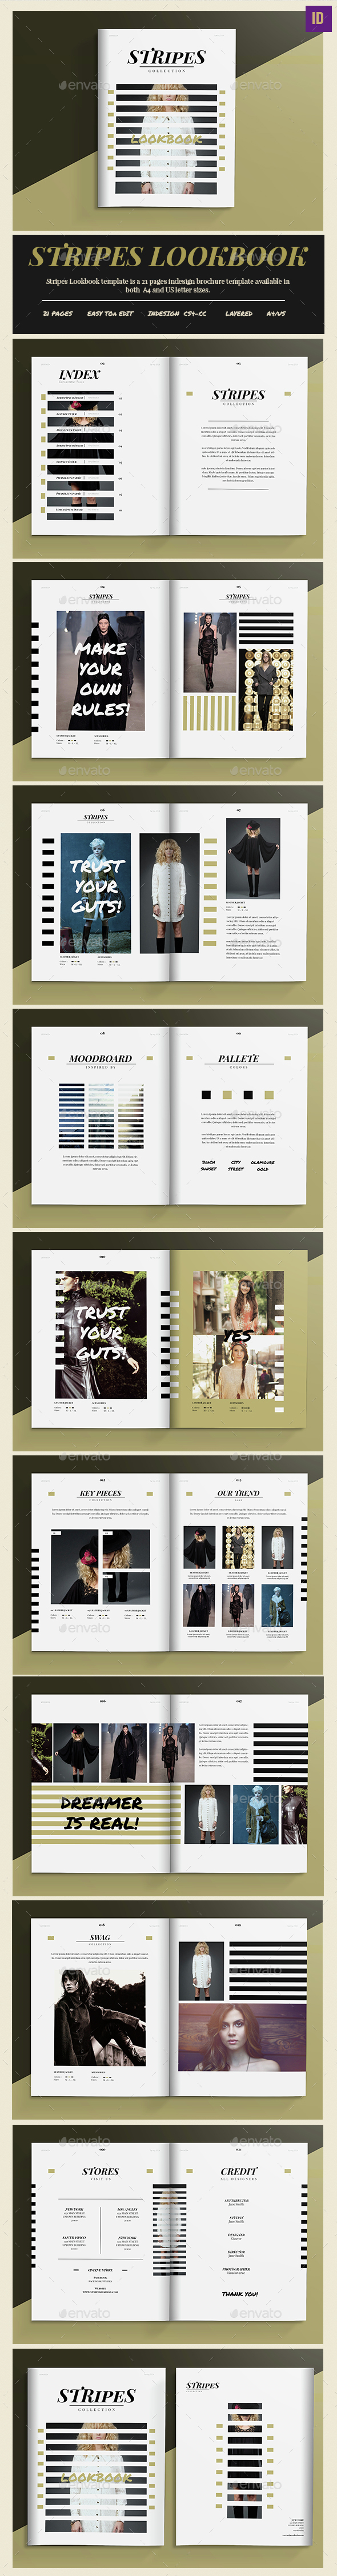 Stripes LookBook/Catalogue - Catalogs Brochures